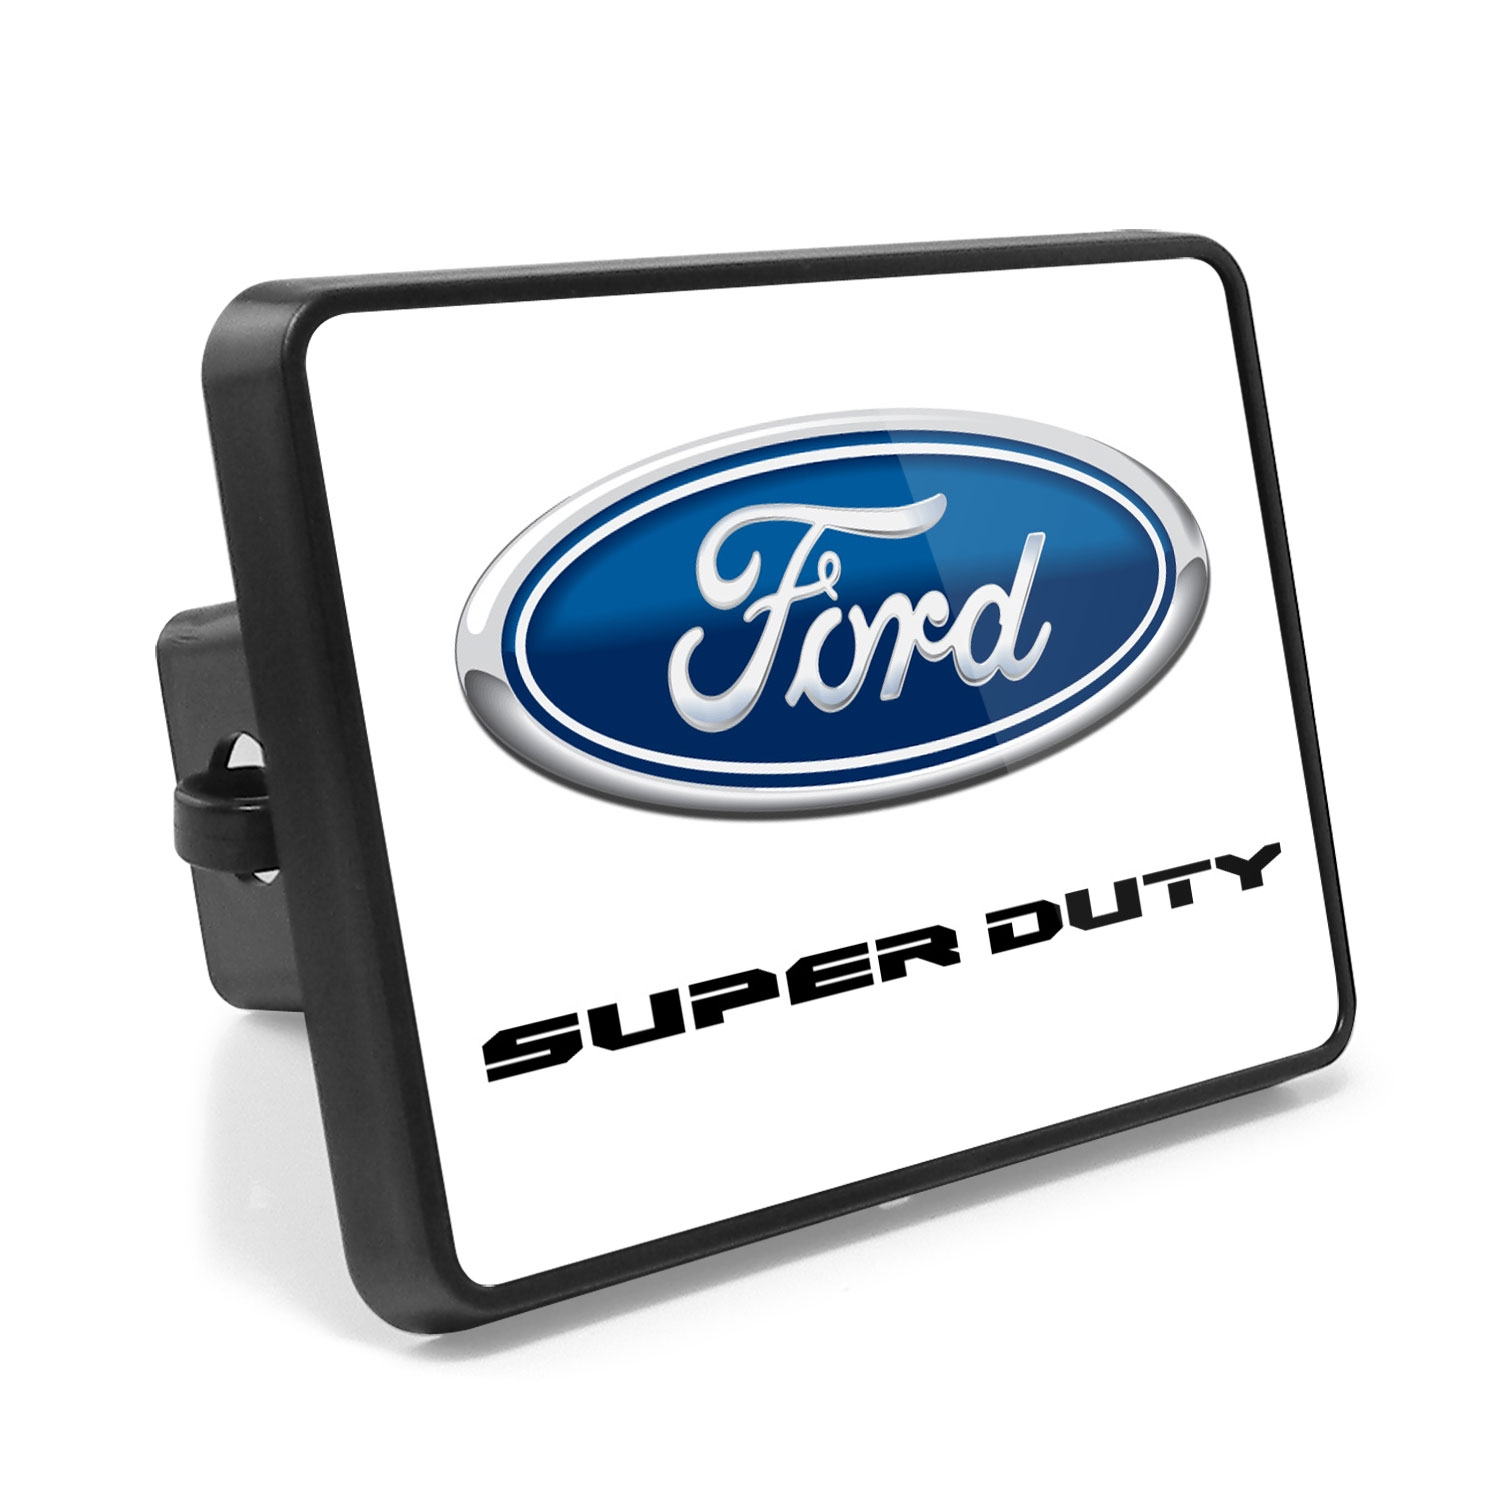 Ford F-Series Super Duty 2016 to 2017 UV Graphic White Metal Plate on ABS Plastic 2 inch Tow Hitch Cover